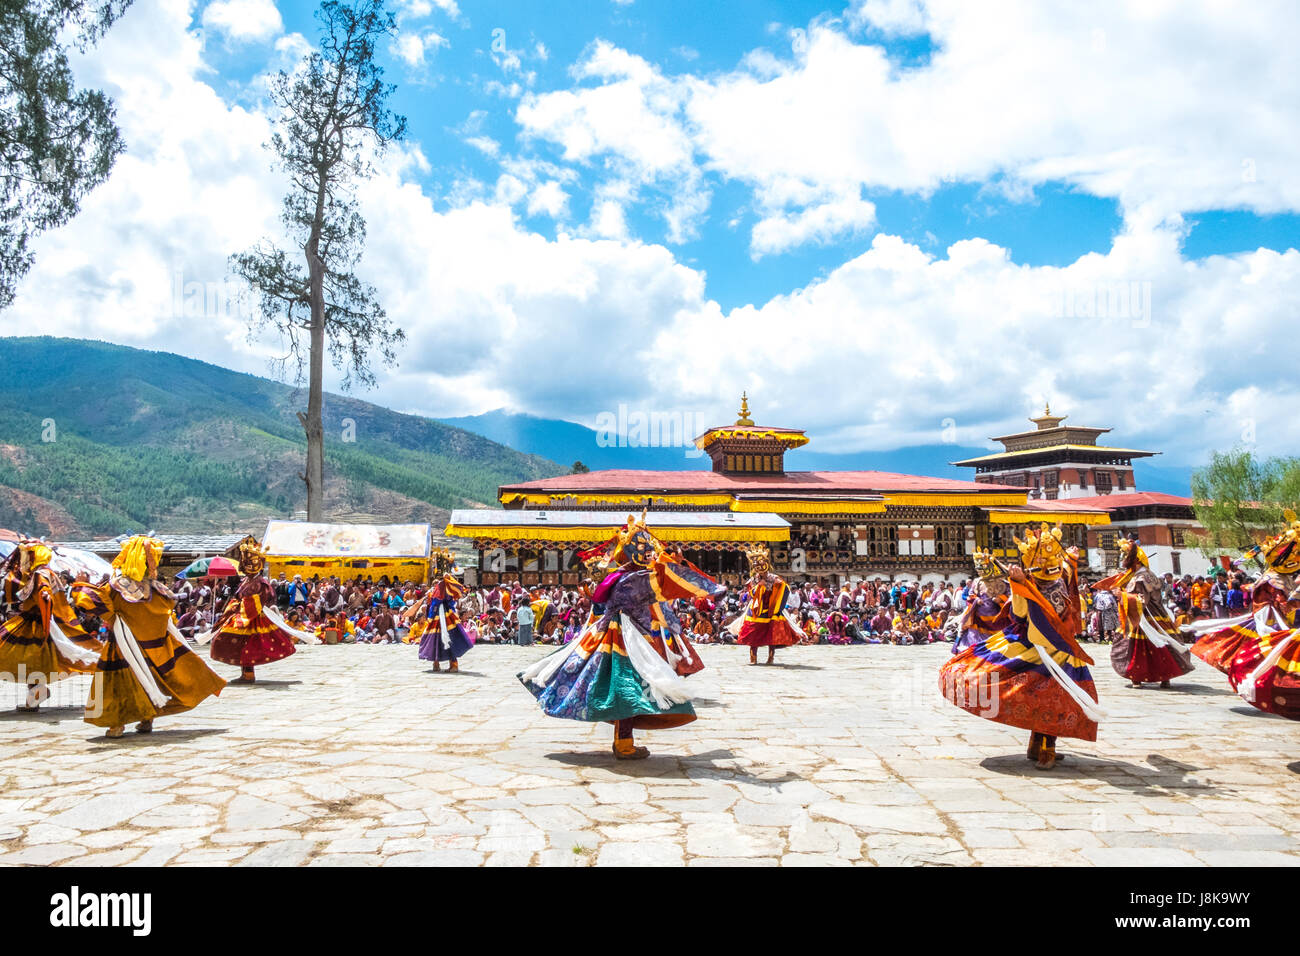 Cham dance or mask dance at Paro Tsechu, Bhutan's largest Tantric Buddhism festival celebrated in spring. - Stock Image